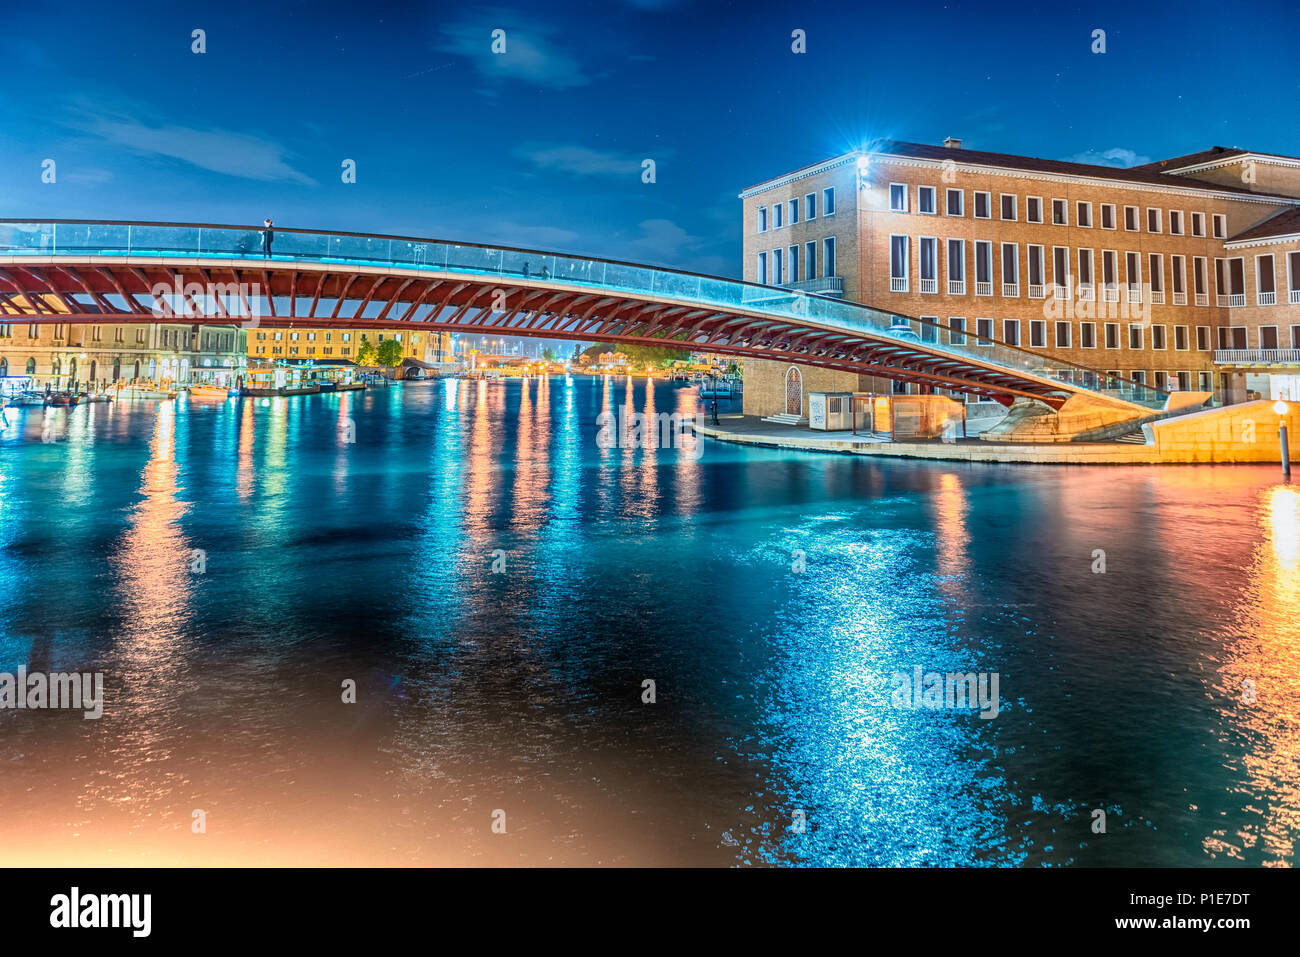 VENICE, ITALY - APRIL 29: Night view of the controversial Constitution Bridge in Venice, Italy on April 29, 2018. Designed by the starchitect Santiago - Stock Image